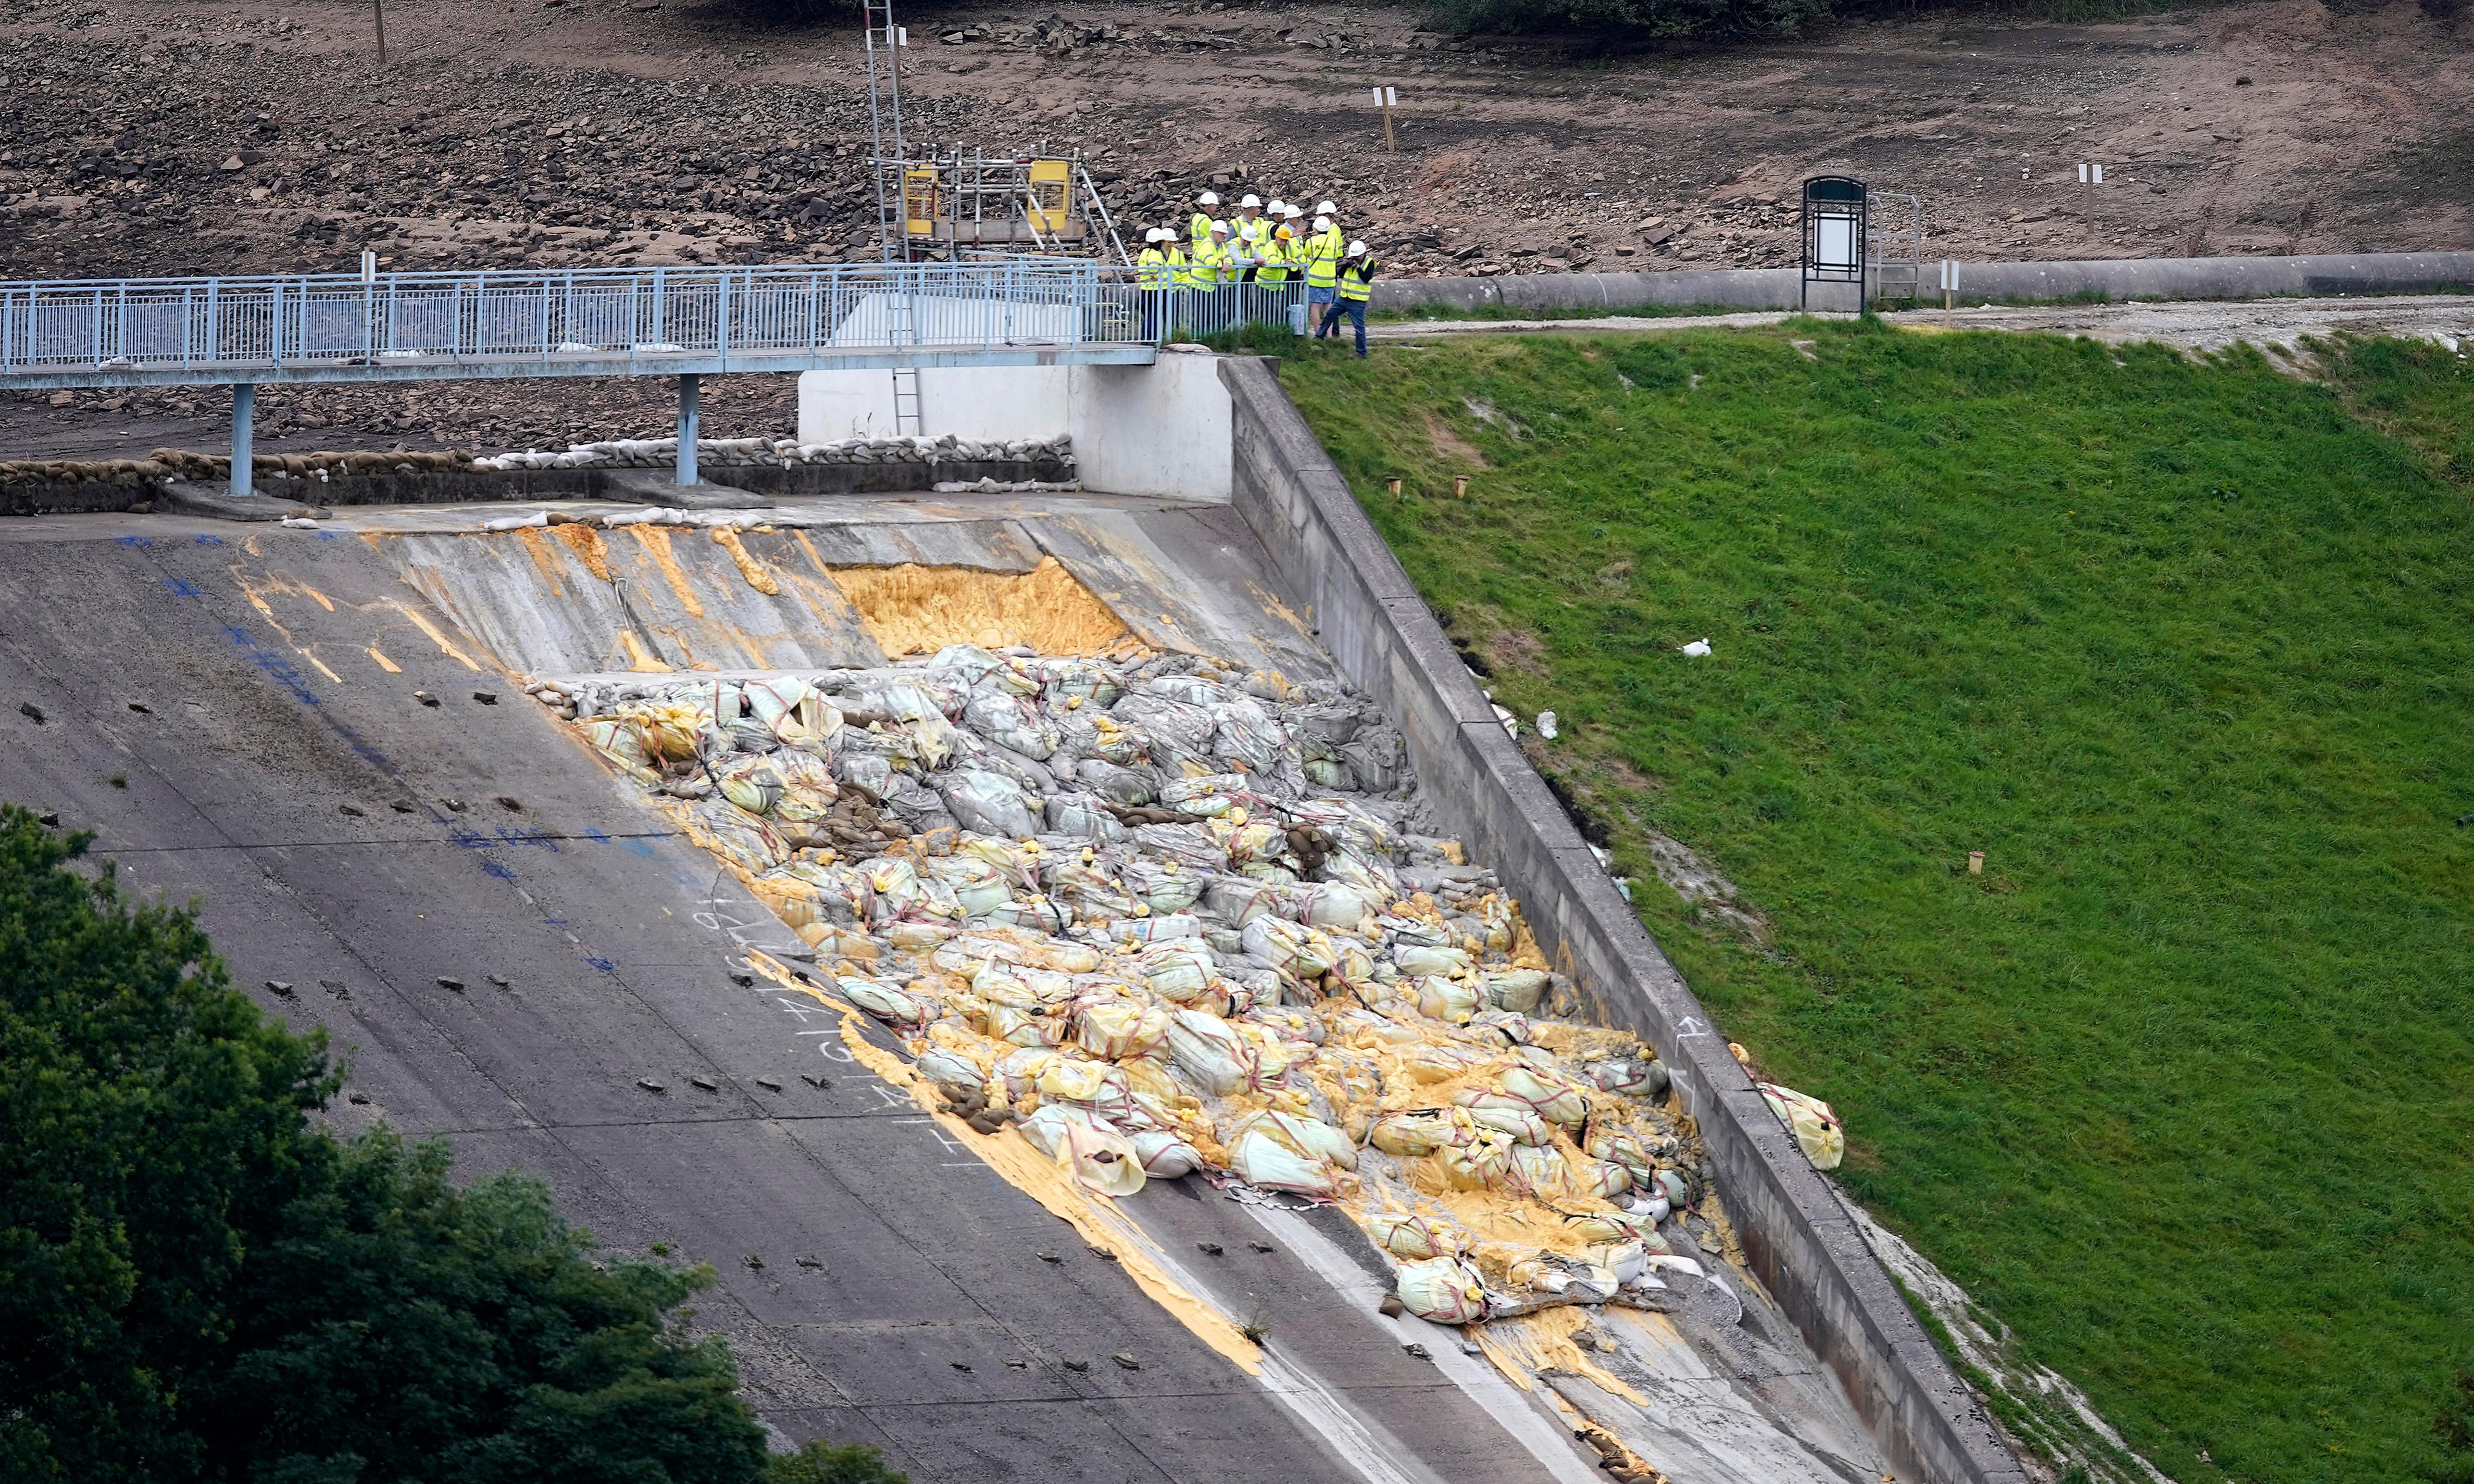 Disaster tourism arrives in Whaley Bridge after dam incident